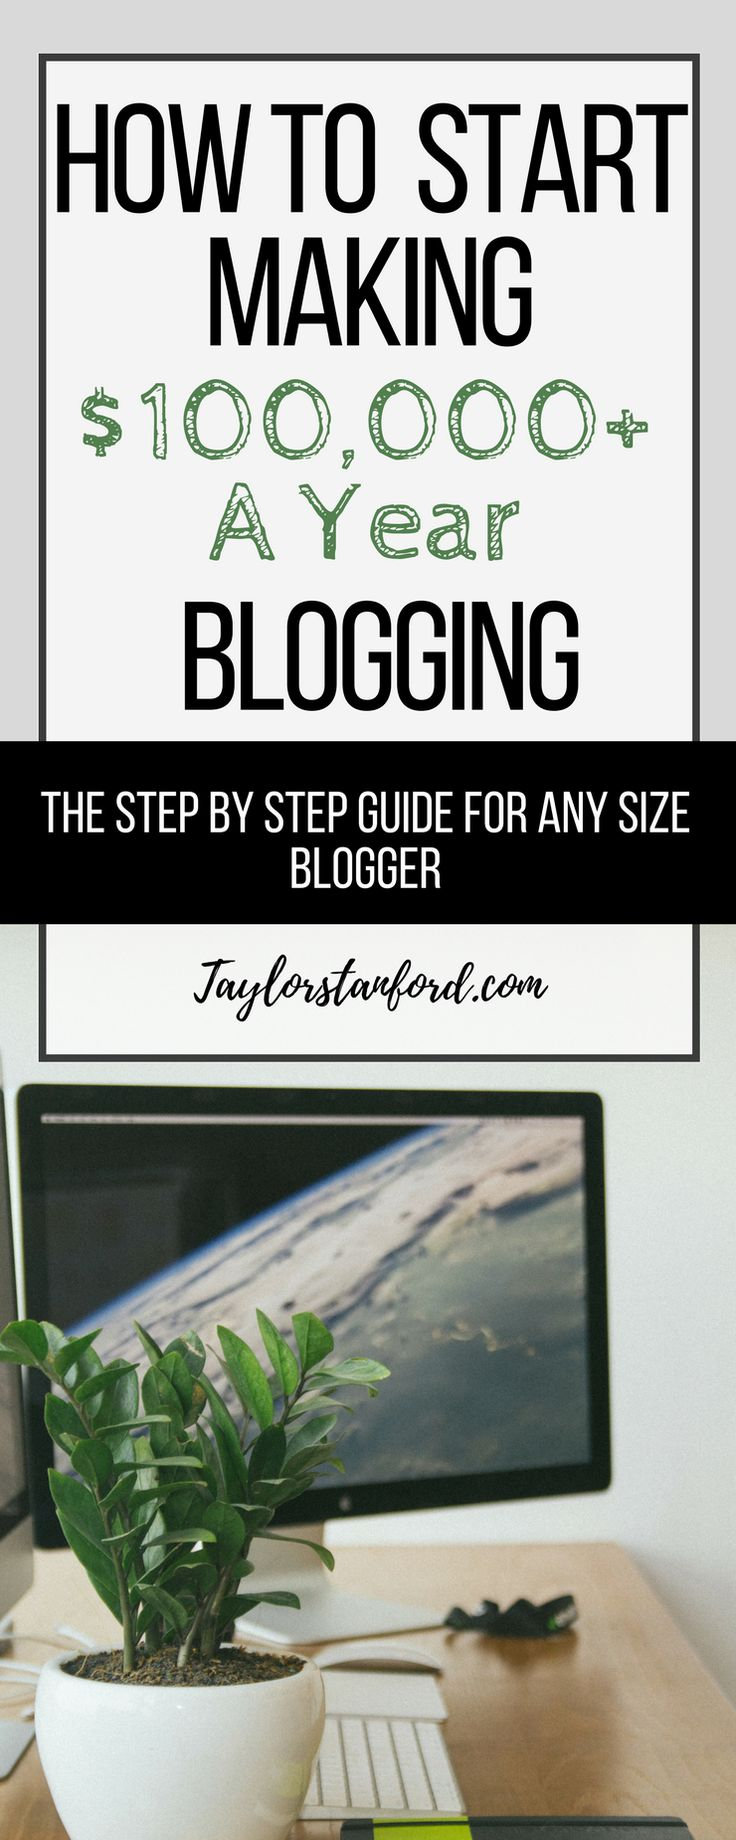 How To Make Money, The things I do to make six figures blogging. Blogging#bloggingtips#blog#blogging